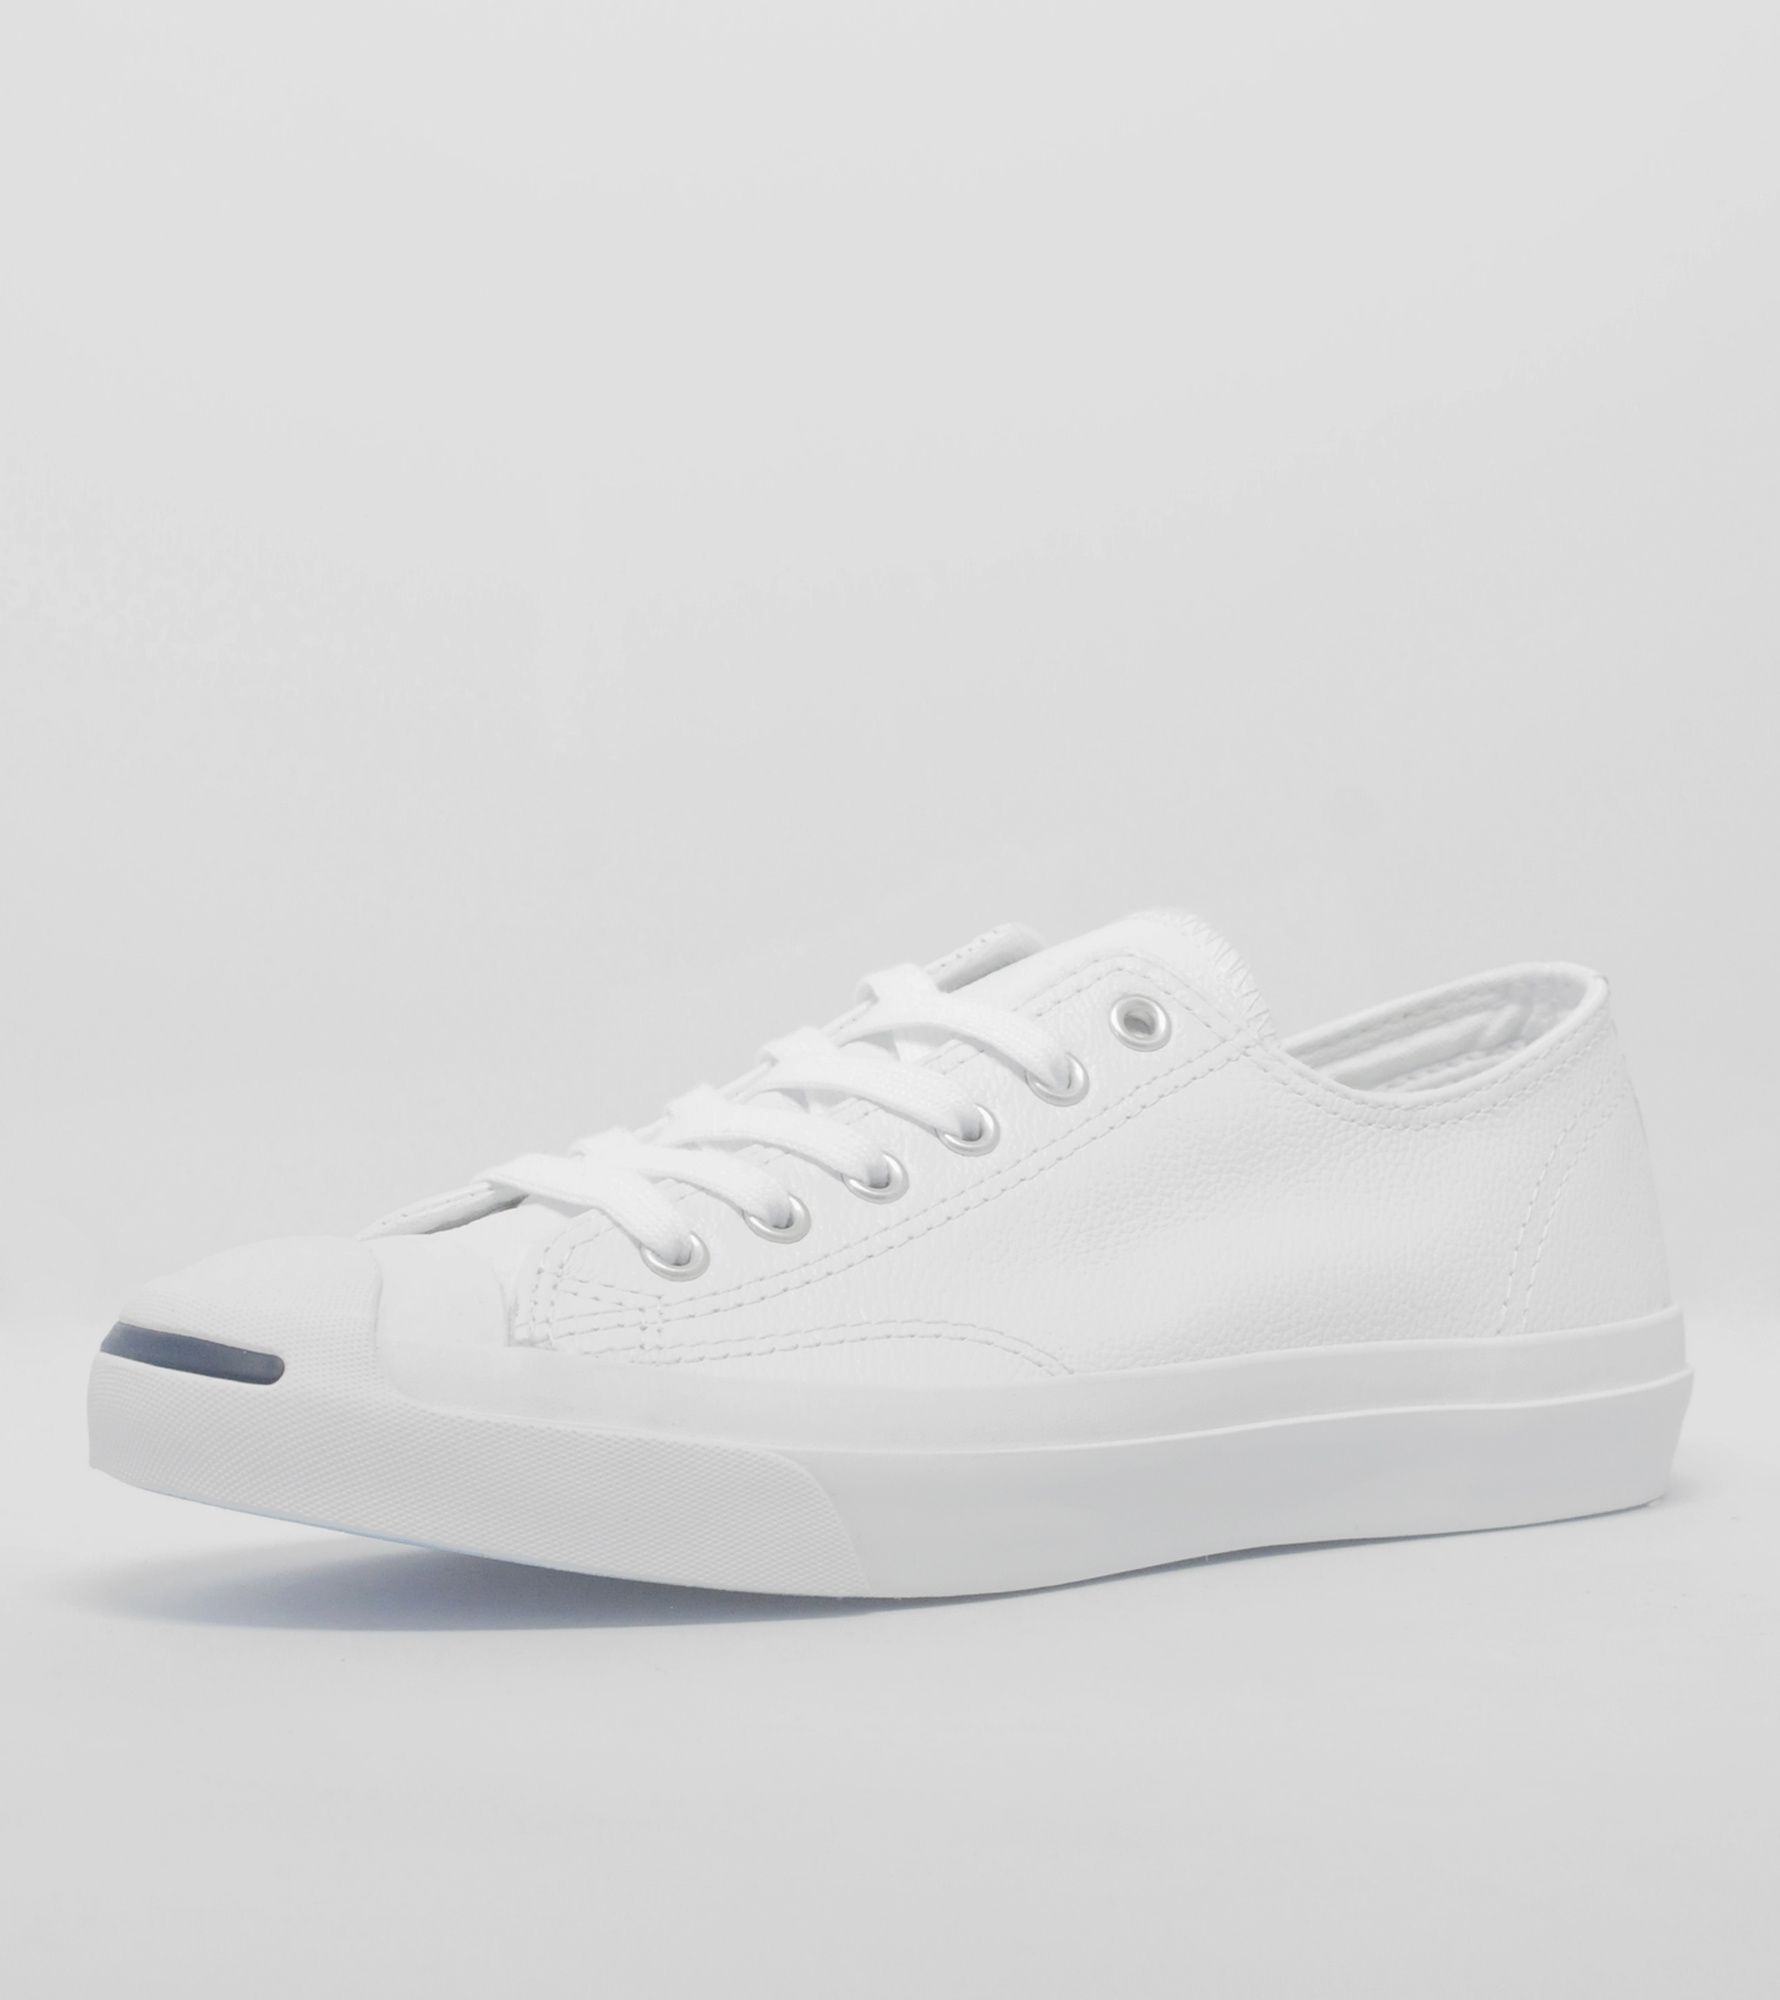 5a3dcc6c0205 ... white size uk 8 0d142 d28bf italy converse jack purcell leather ox  96e50 1eabe ...